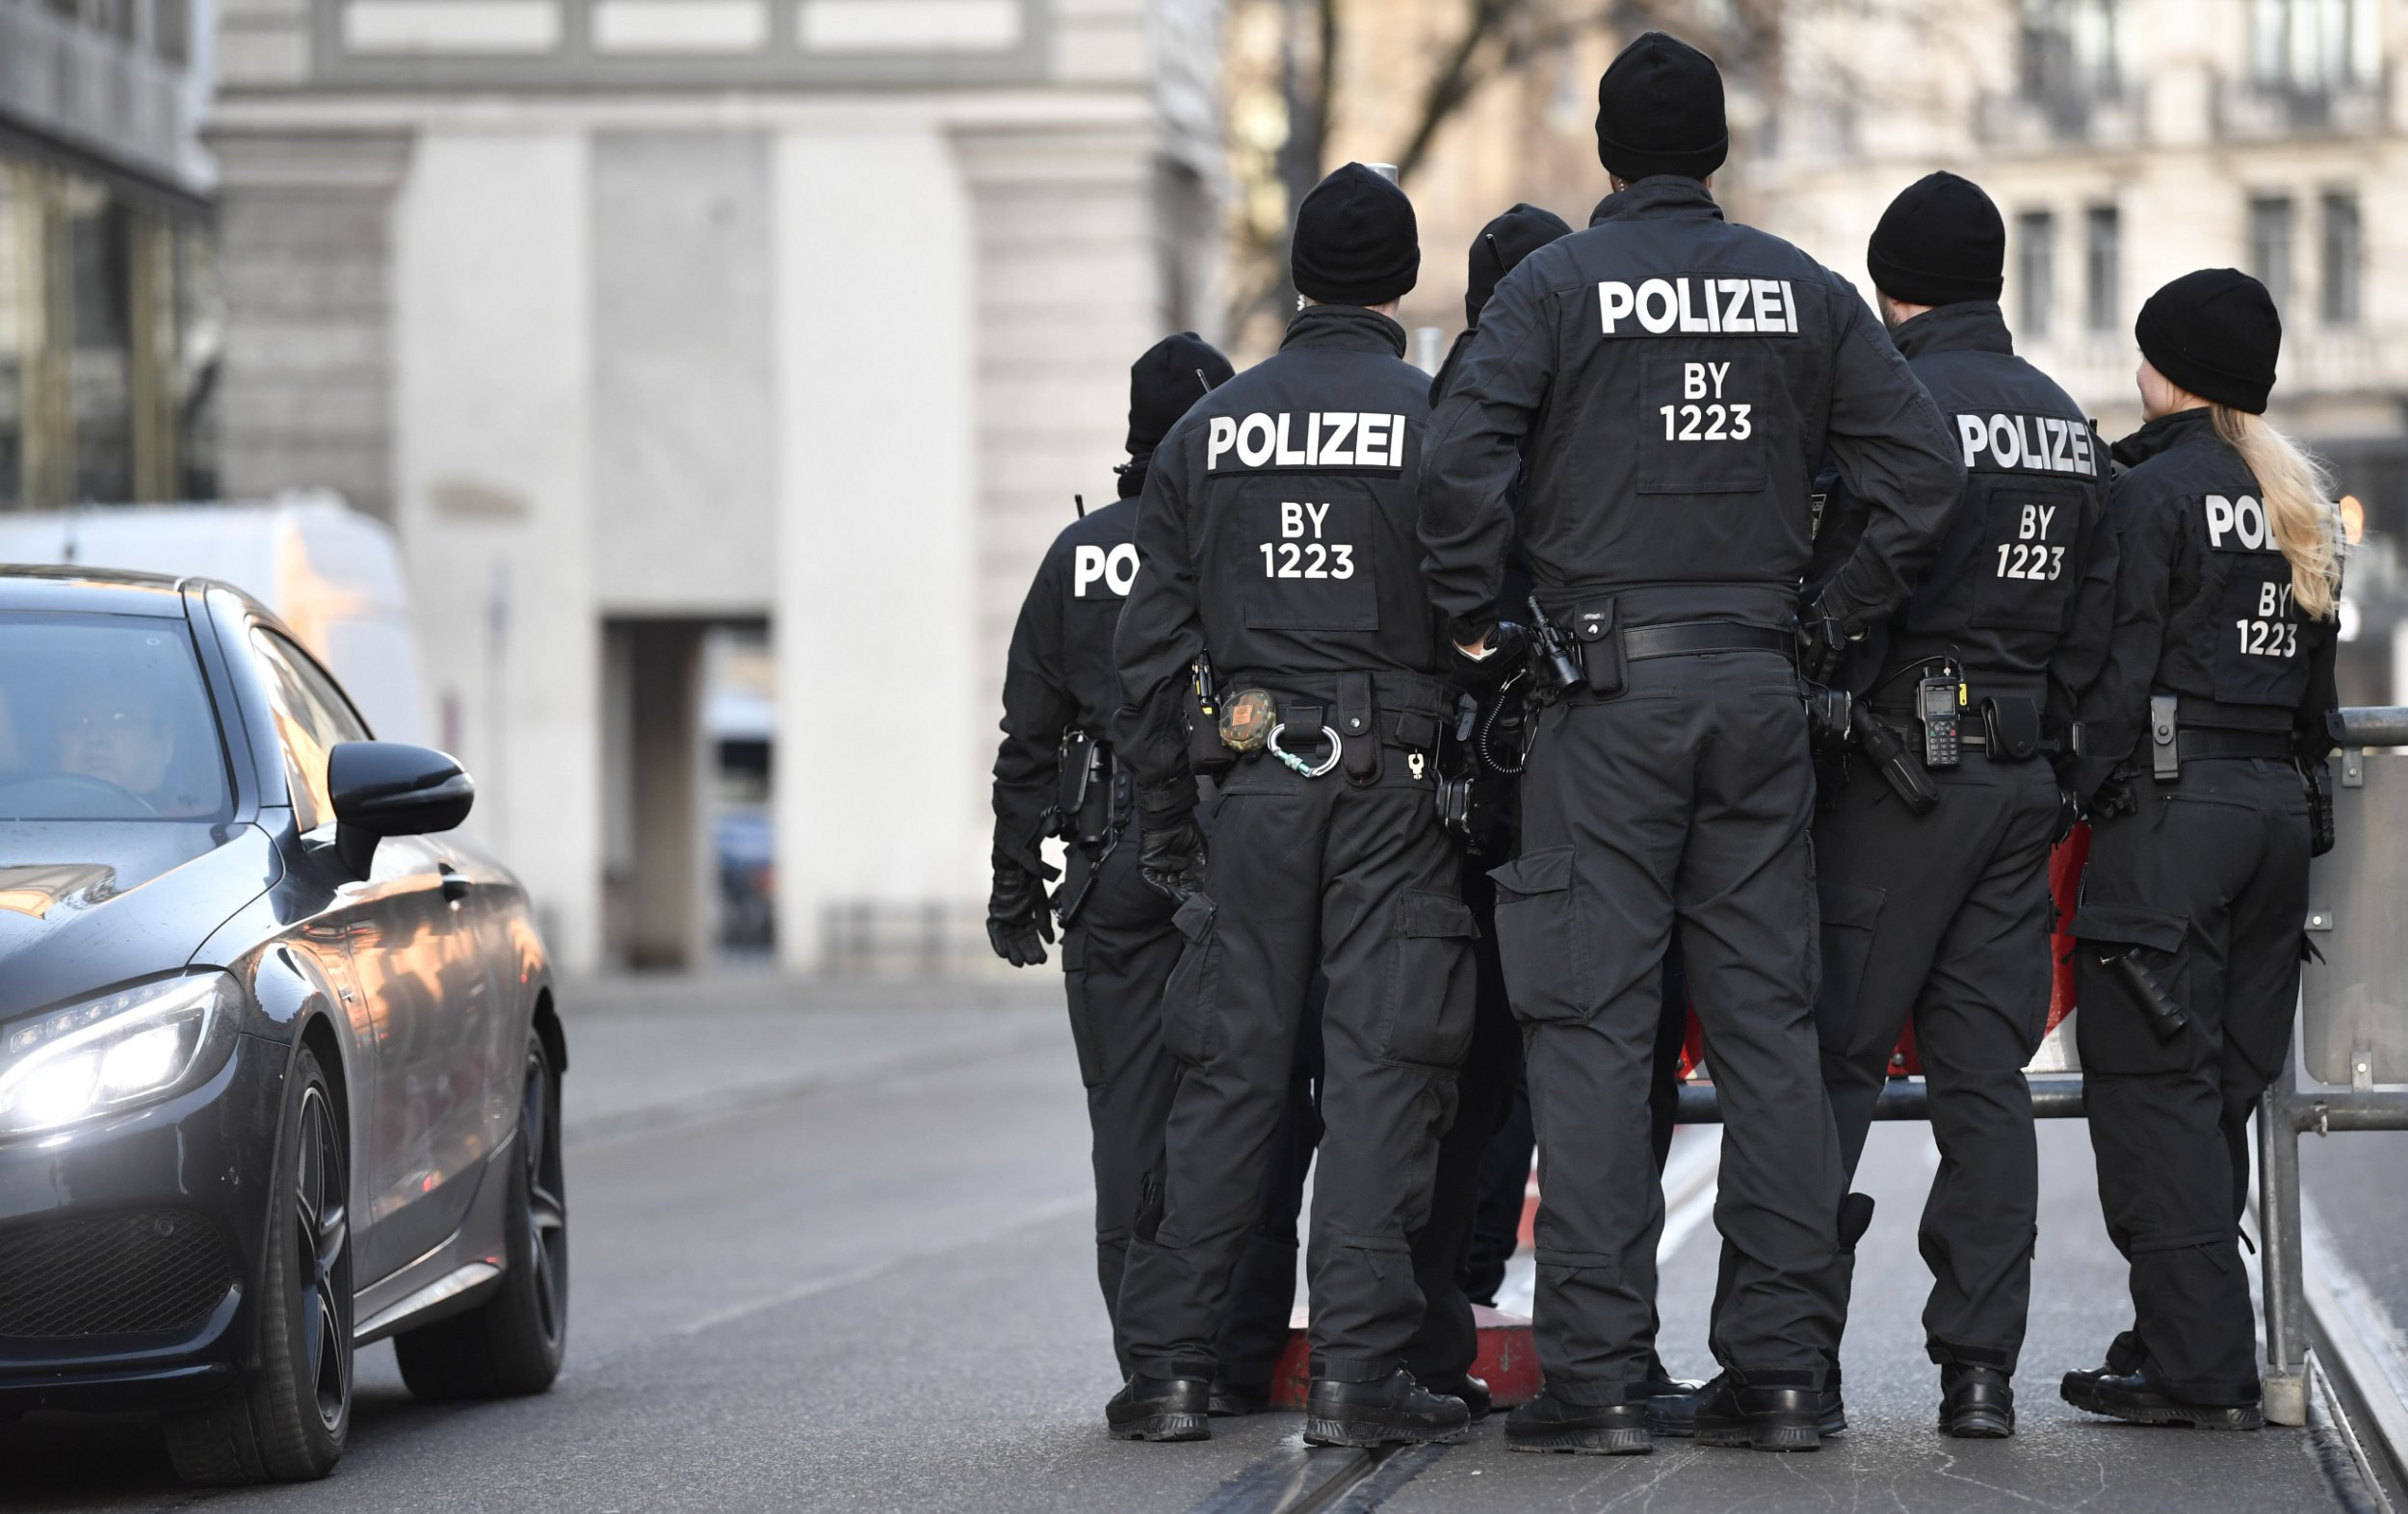 German police arrest group of 11 'plotting to kill as many people as possible'